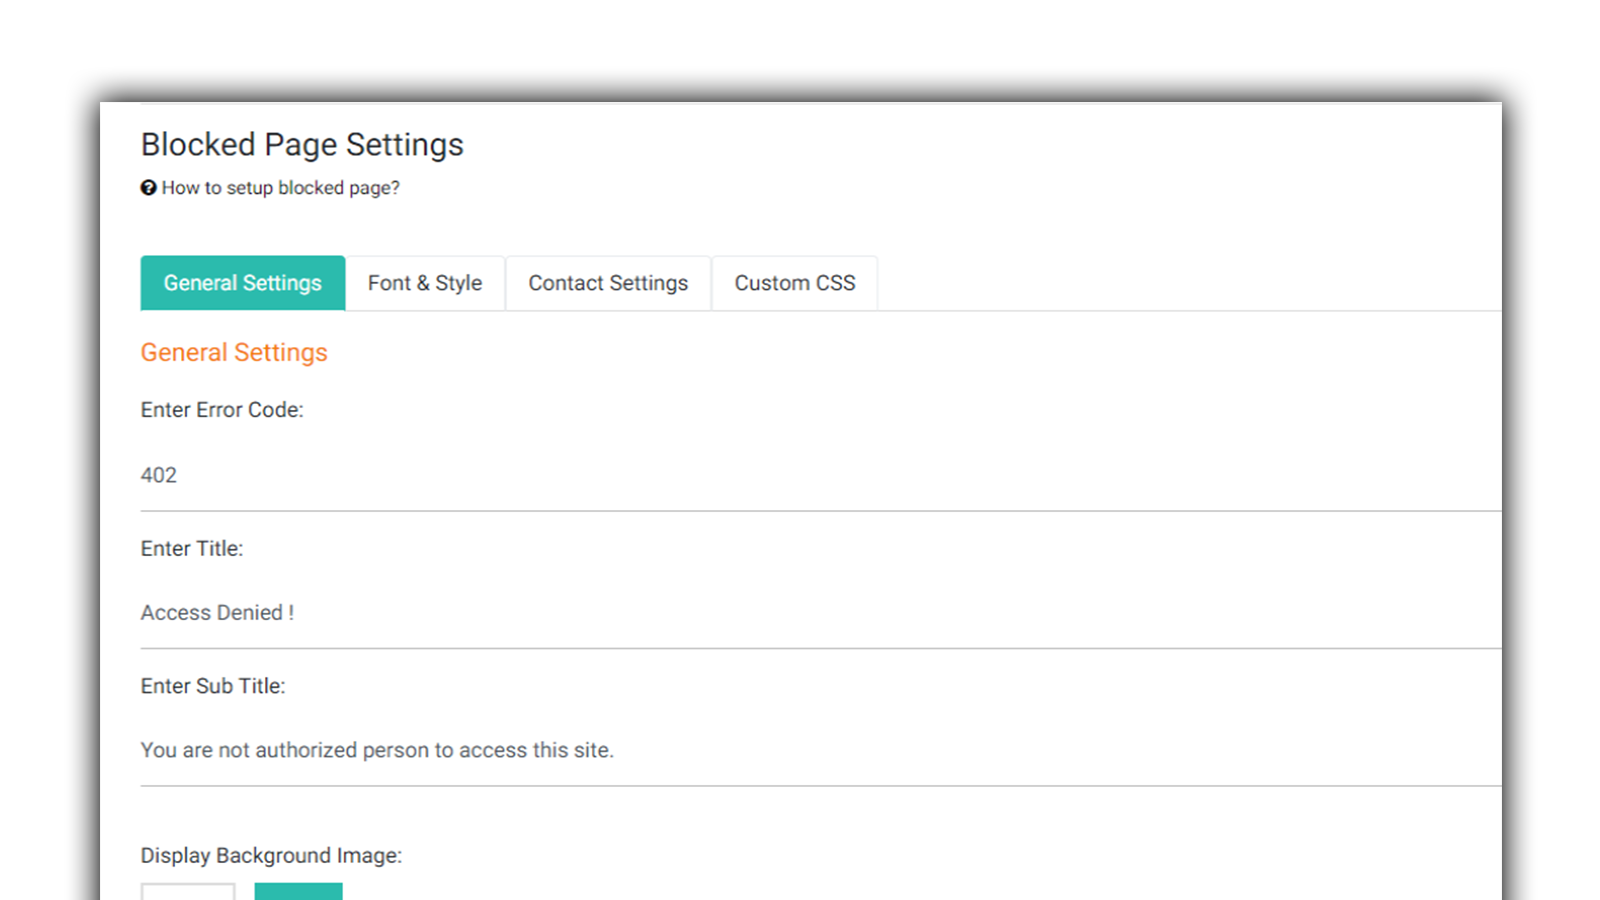 blocked page settings